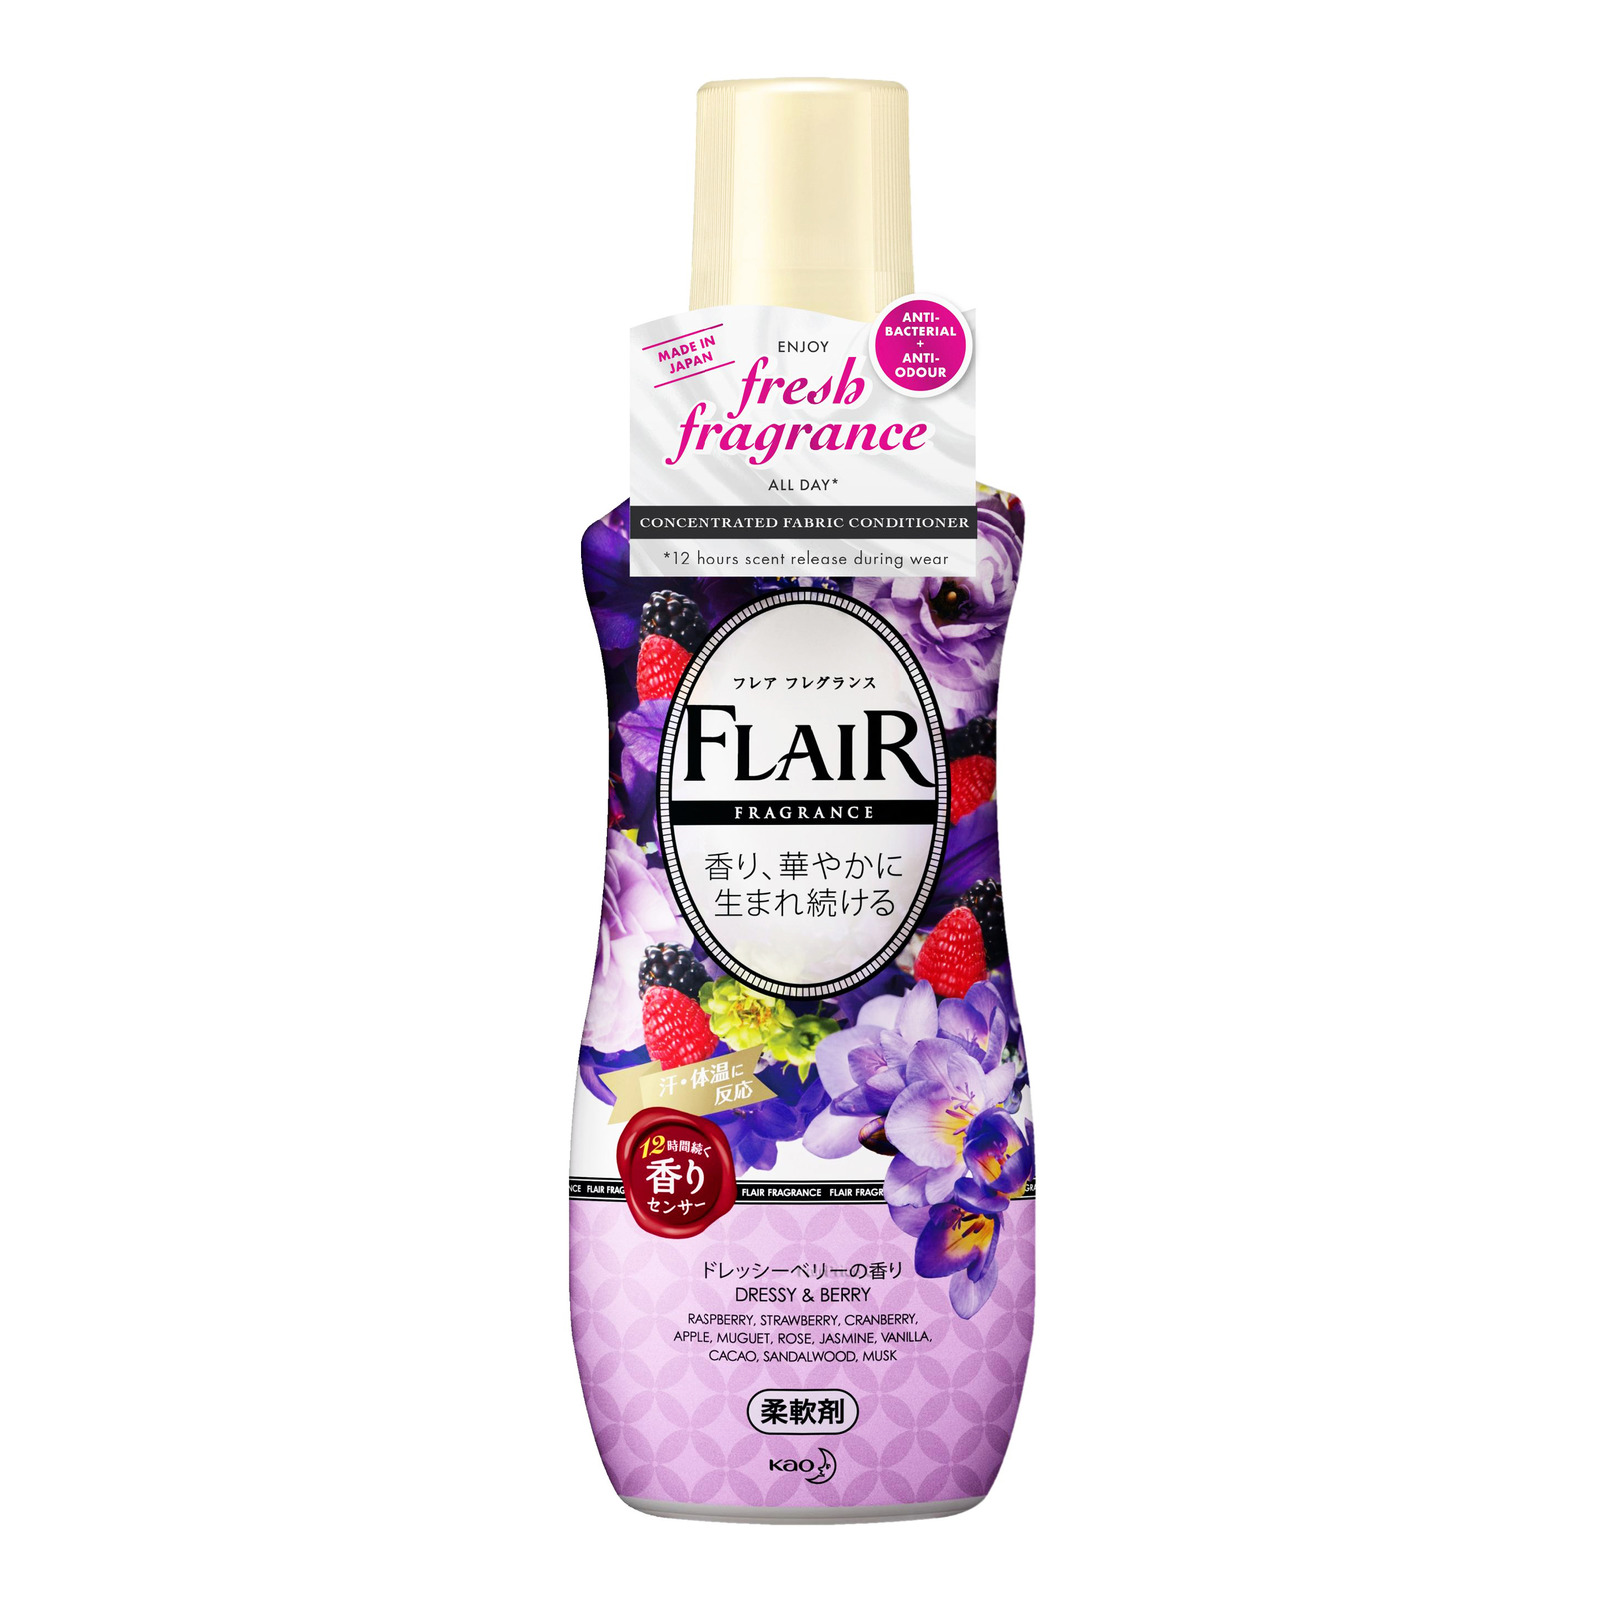 Flair Concentrated Fabric Conditioner - Dressy & Berry